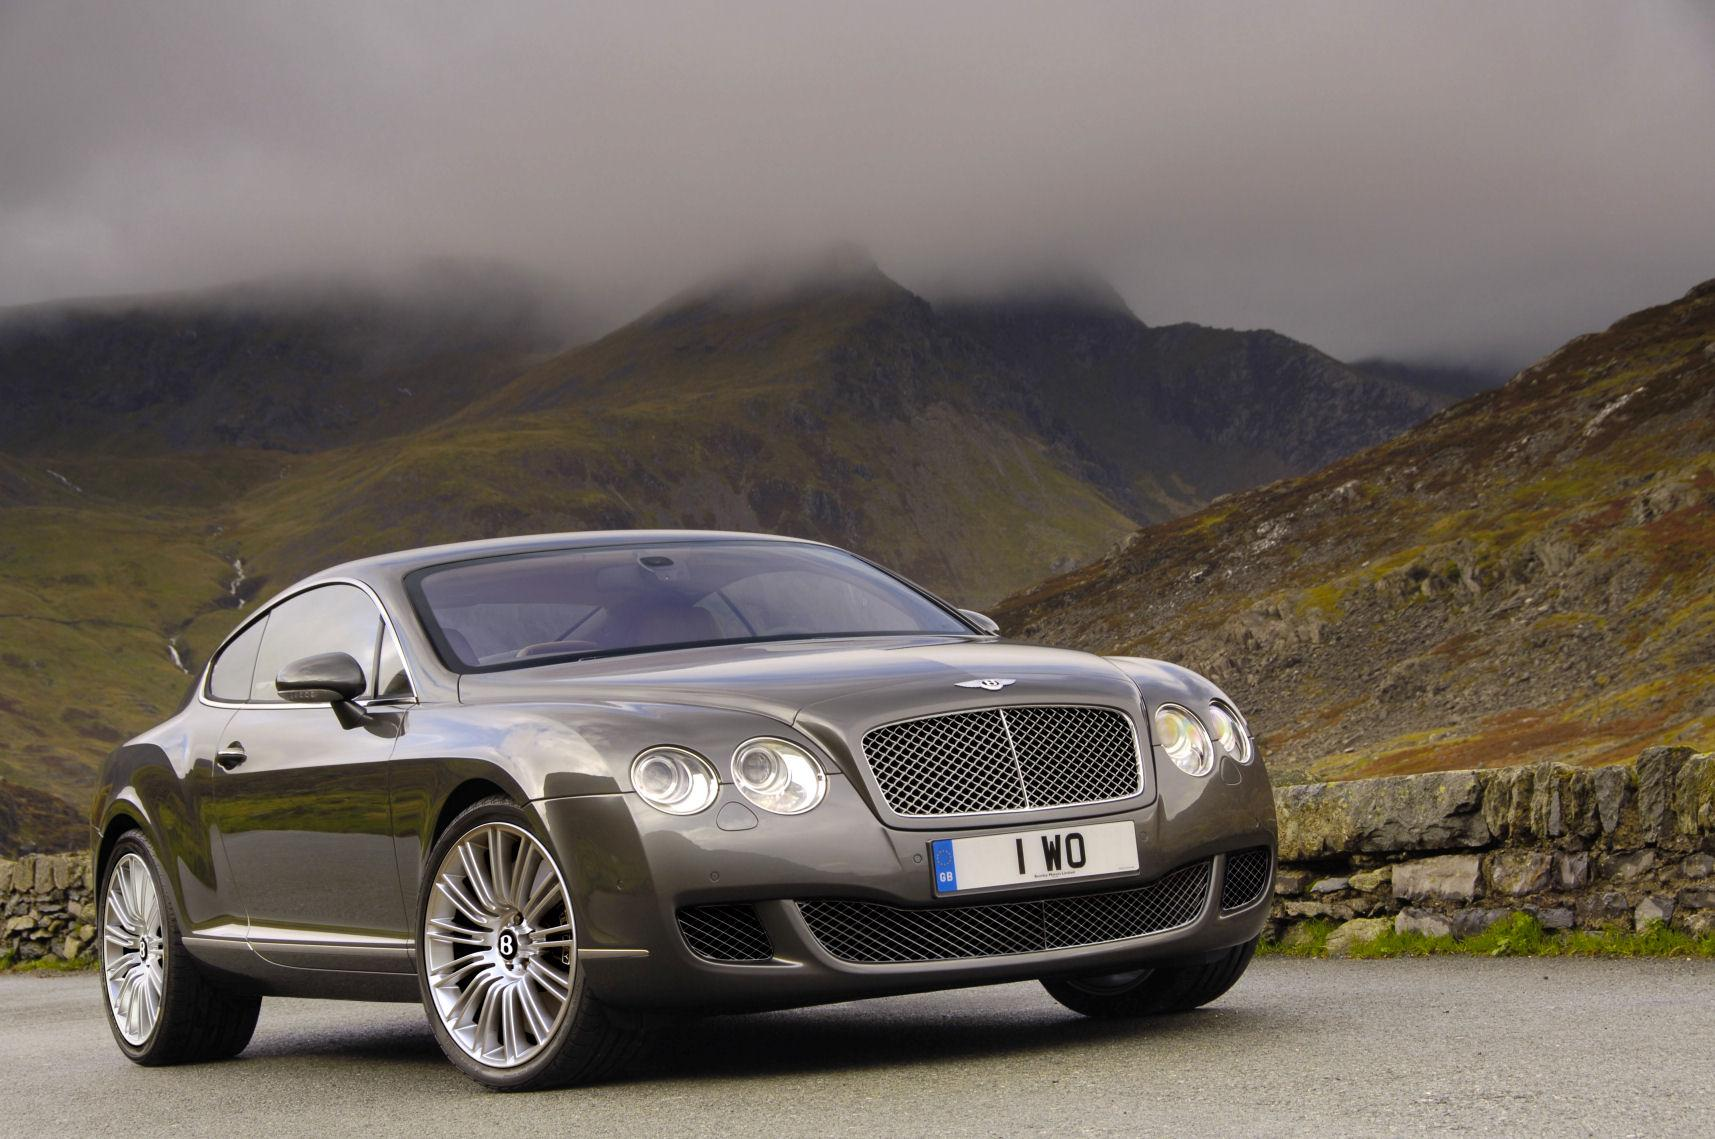 2009 Bentley Continental Gt #4